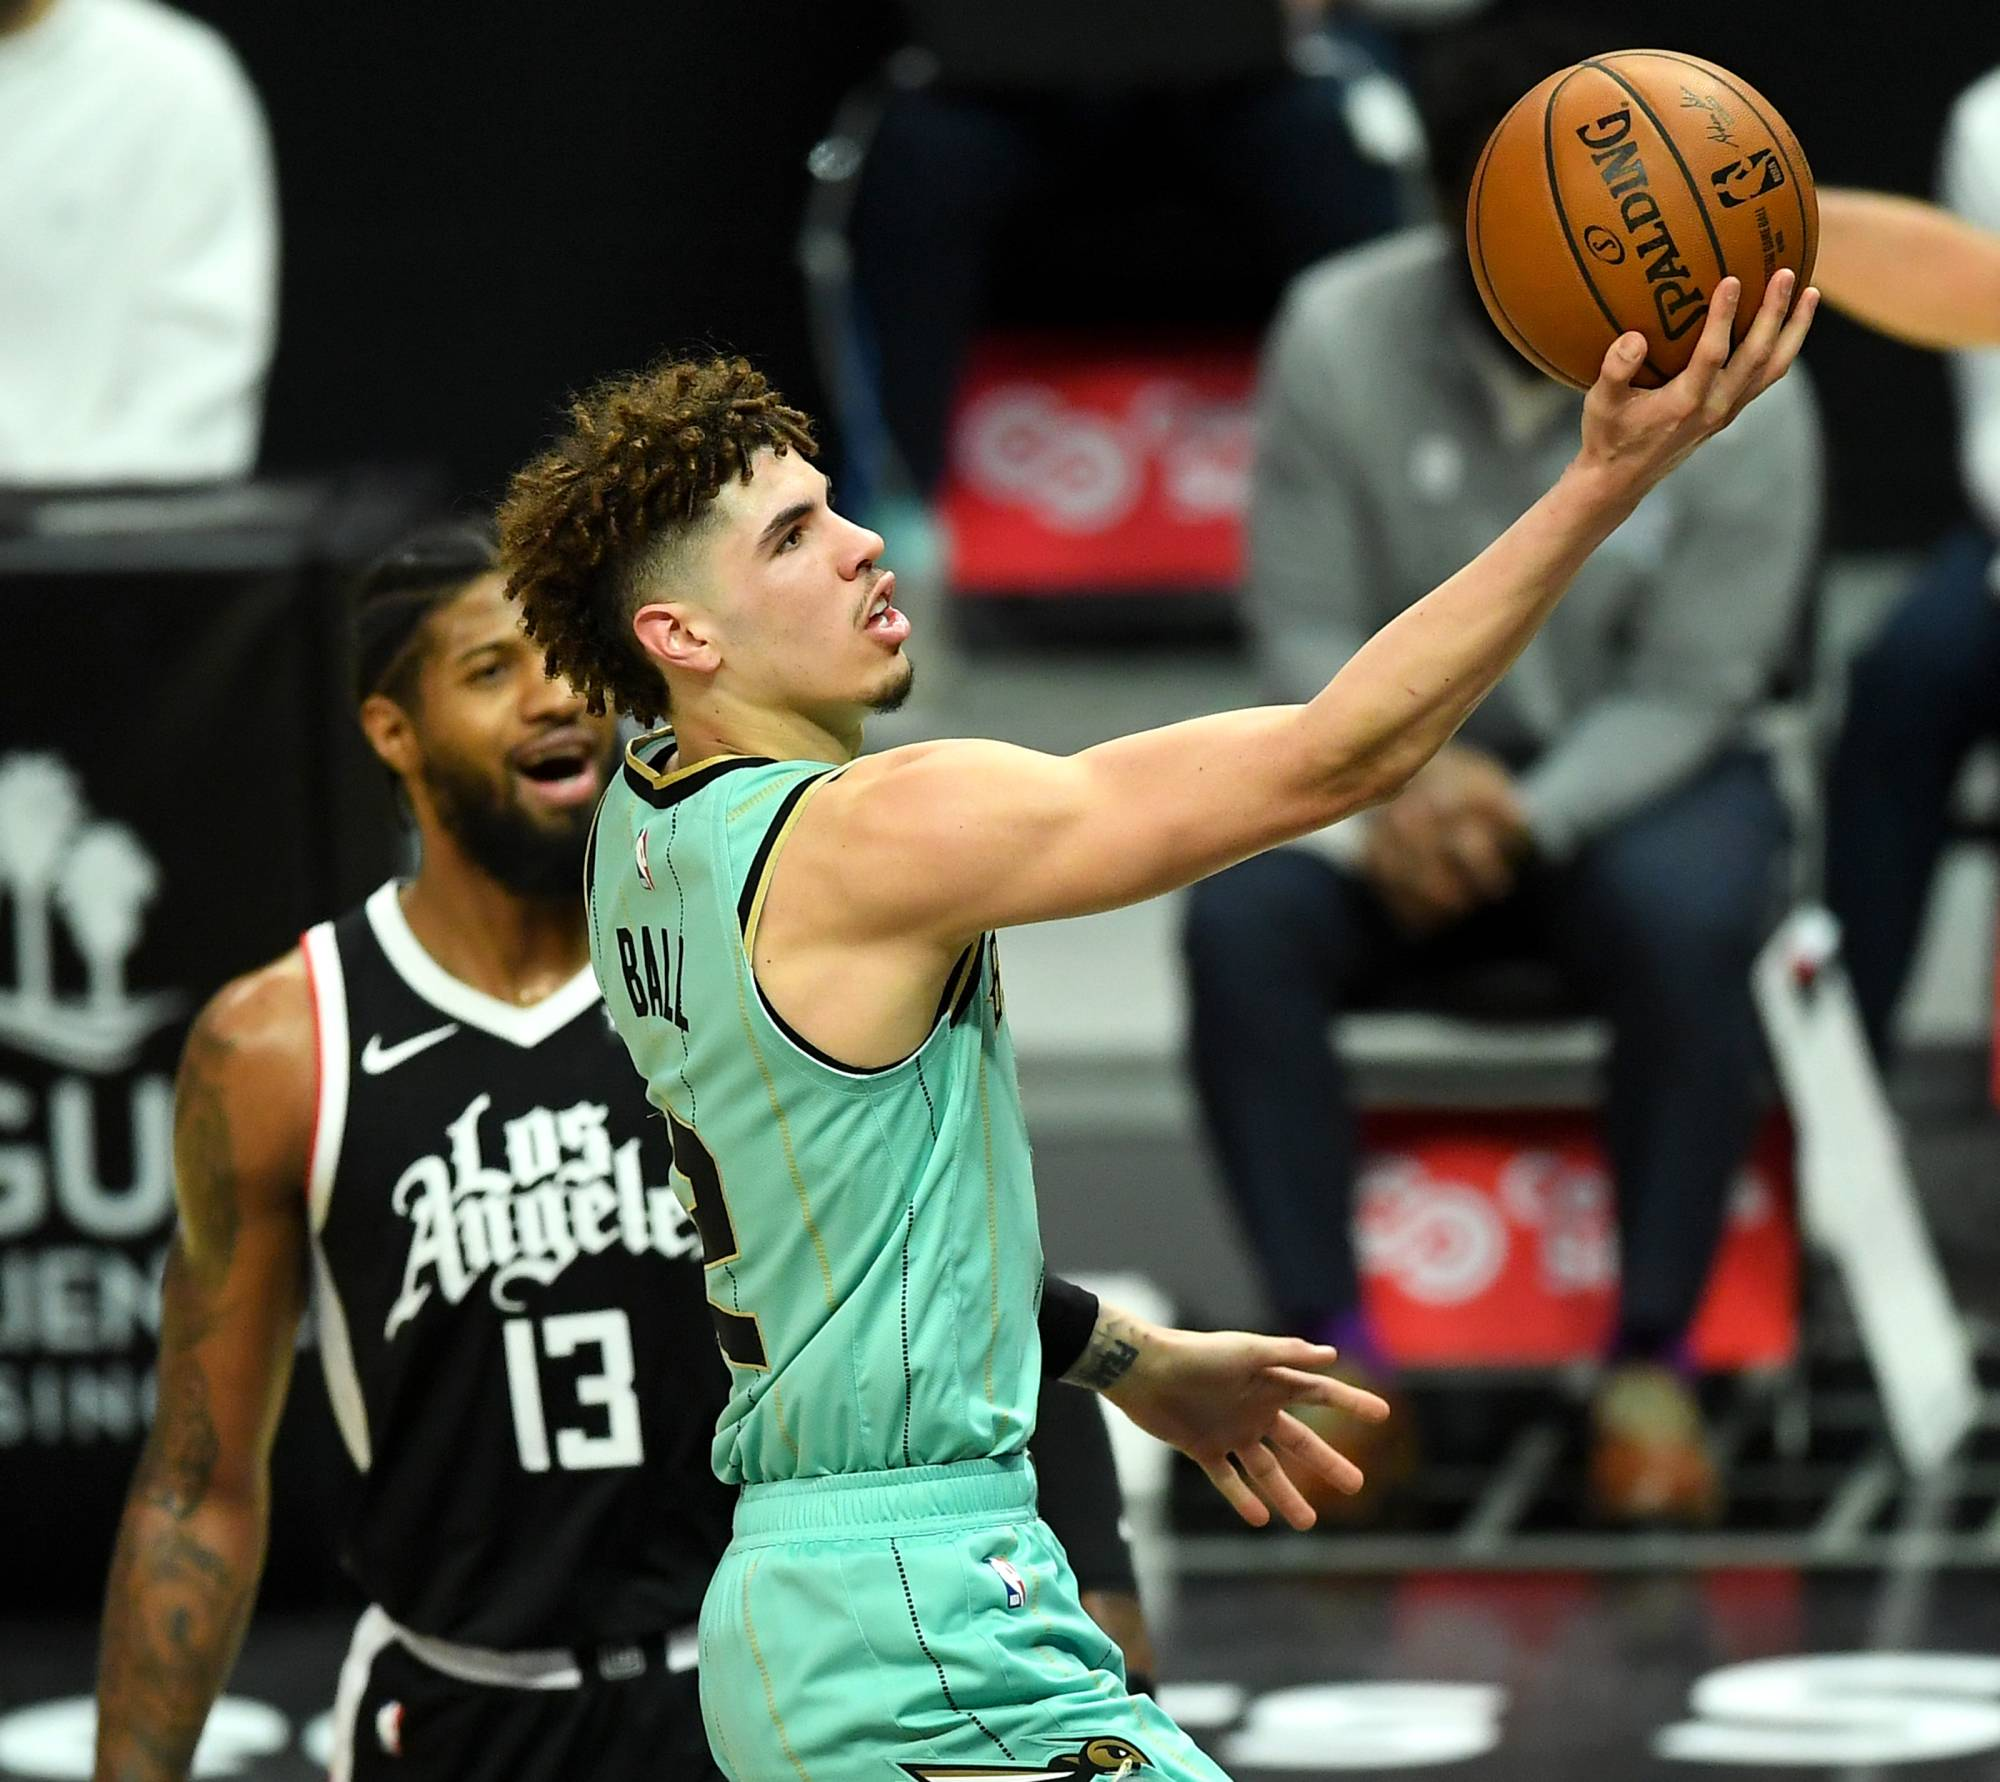 Hornets guard LaMelo Ball goes up for a layup against the Clippers in Los Angeles on Saturday.   USA TODAY / VIA REUTERS